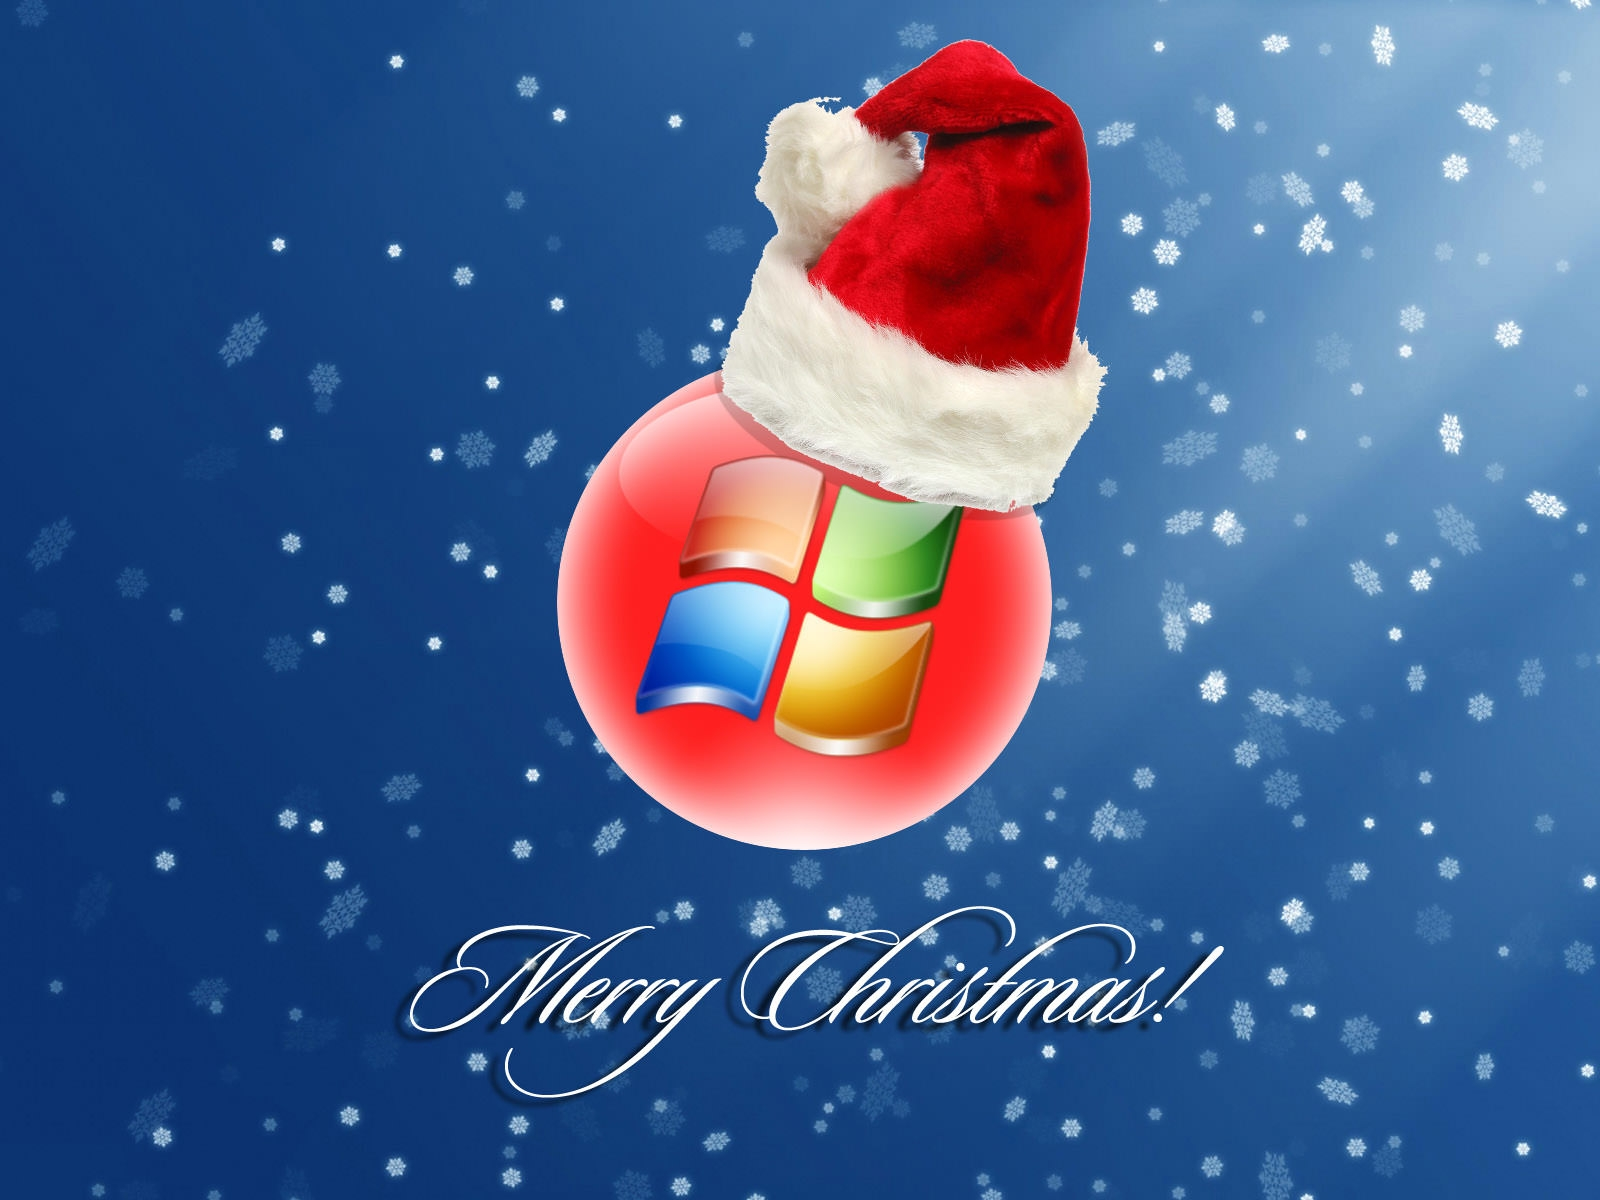 Beautiful hd christmas desktop wallpapers freecreatives